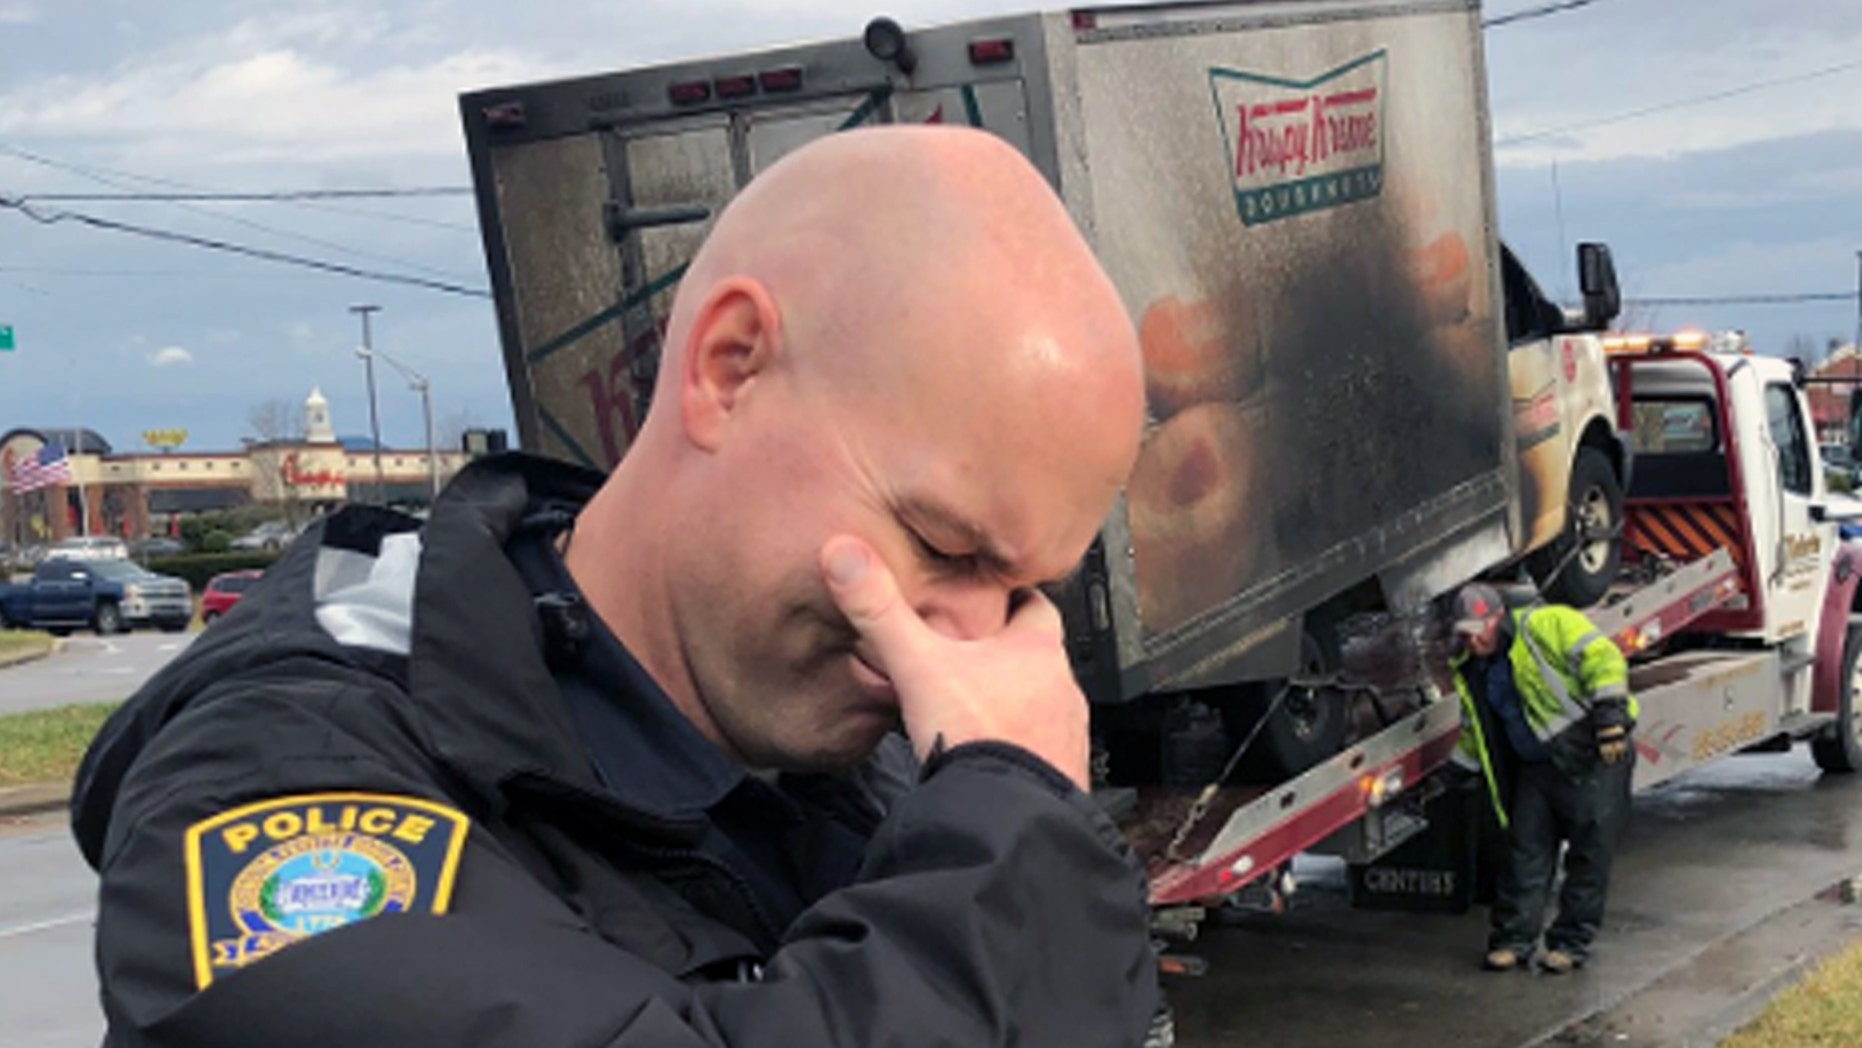 Kentucky Police Officers post photos 'grieving' over loss of doughnut truck